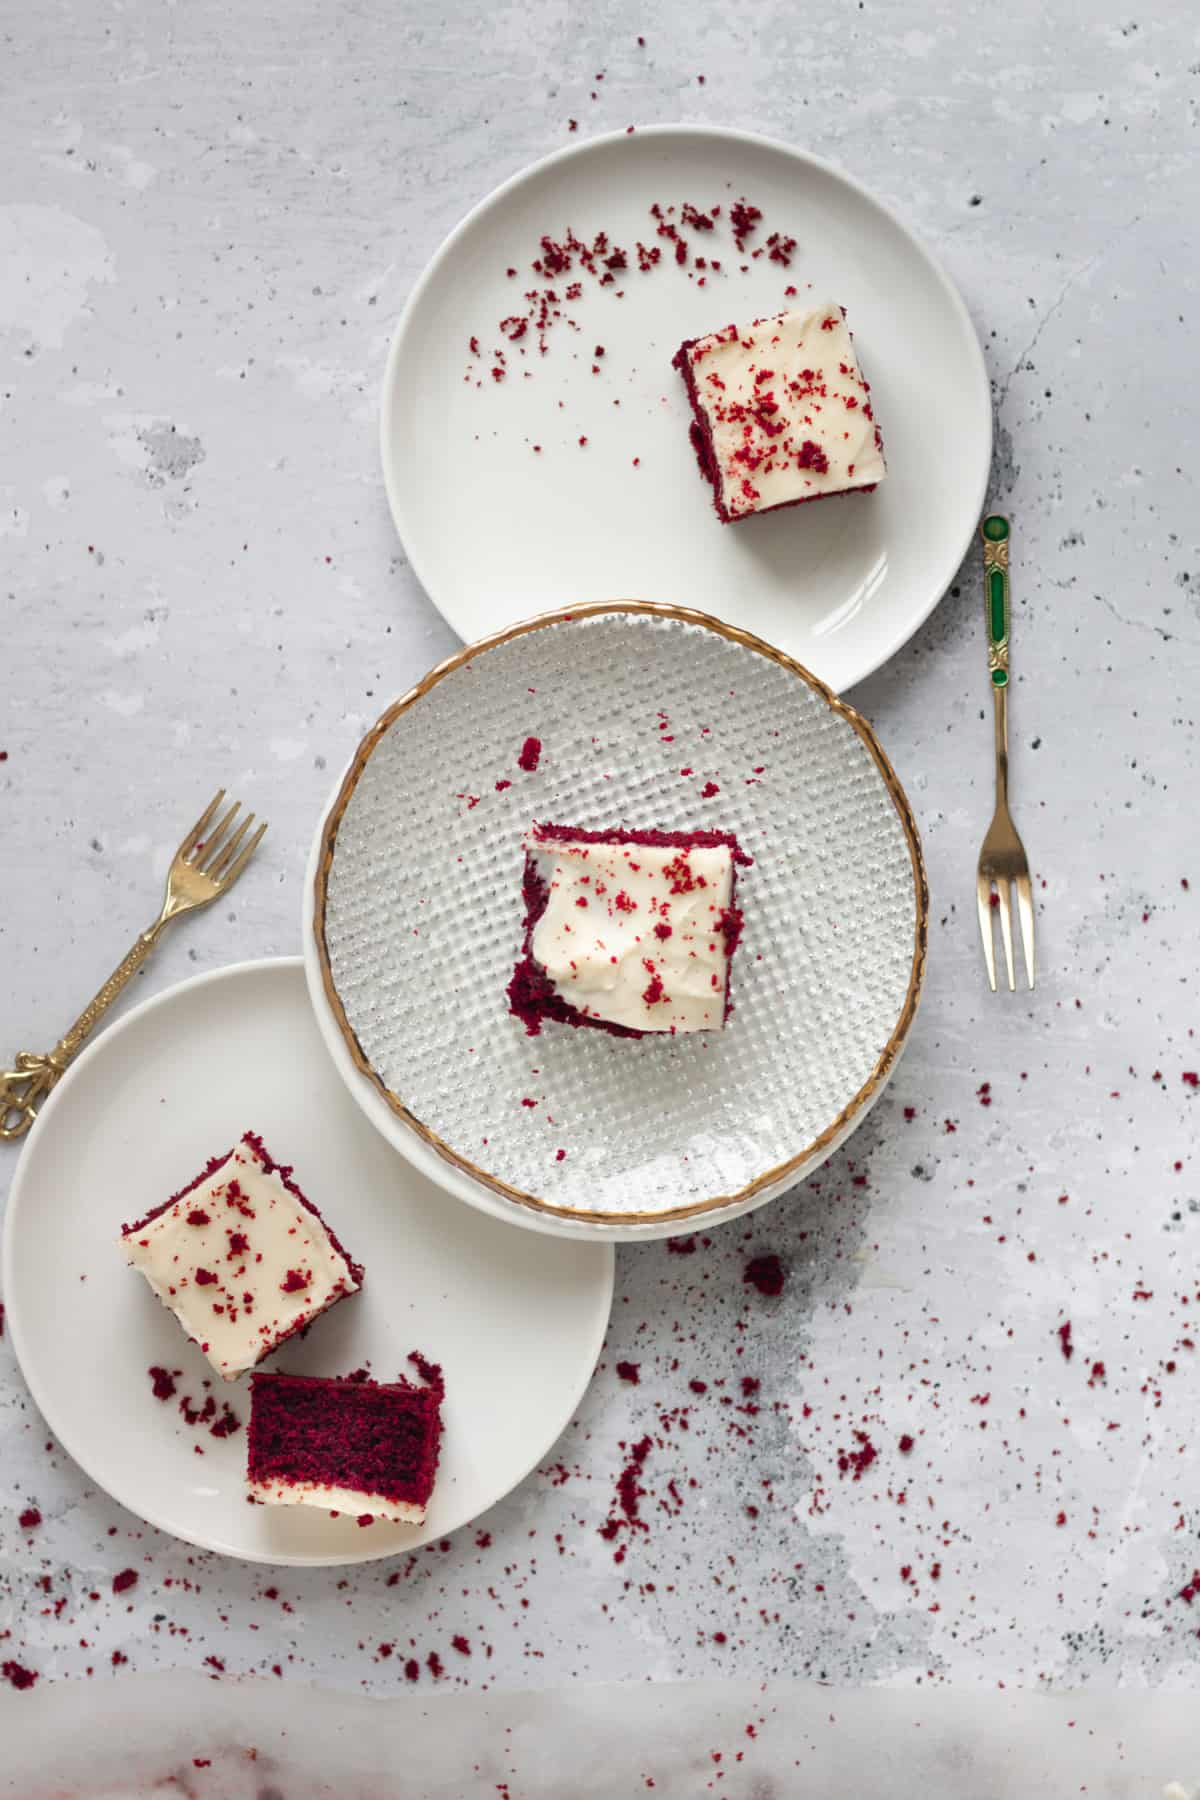 three squared of Red Velvet Sheet Cake with Mascarpone Cream Cheese Frosting on three plates